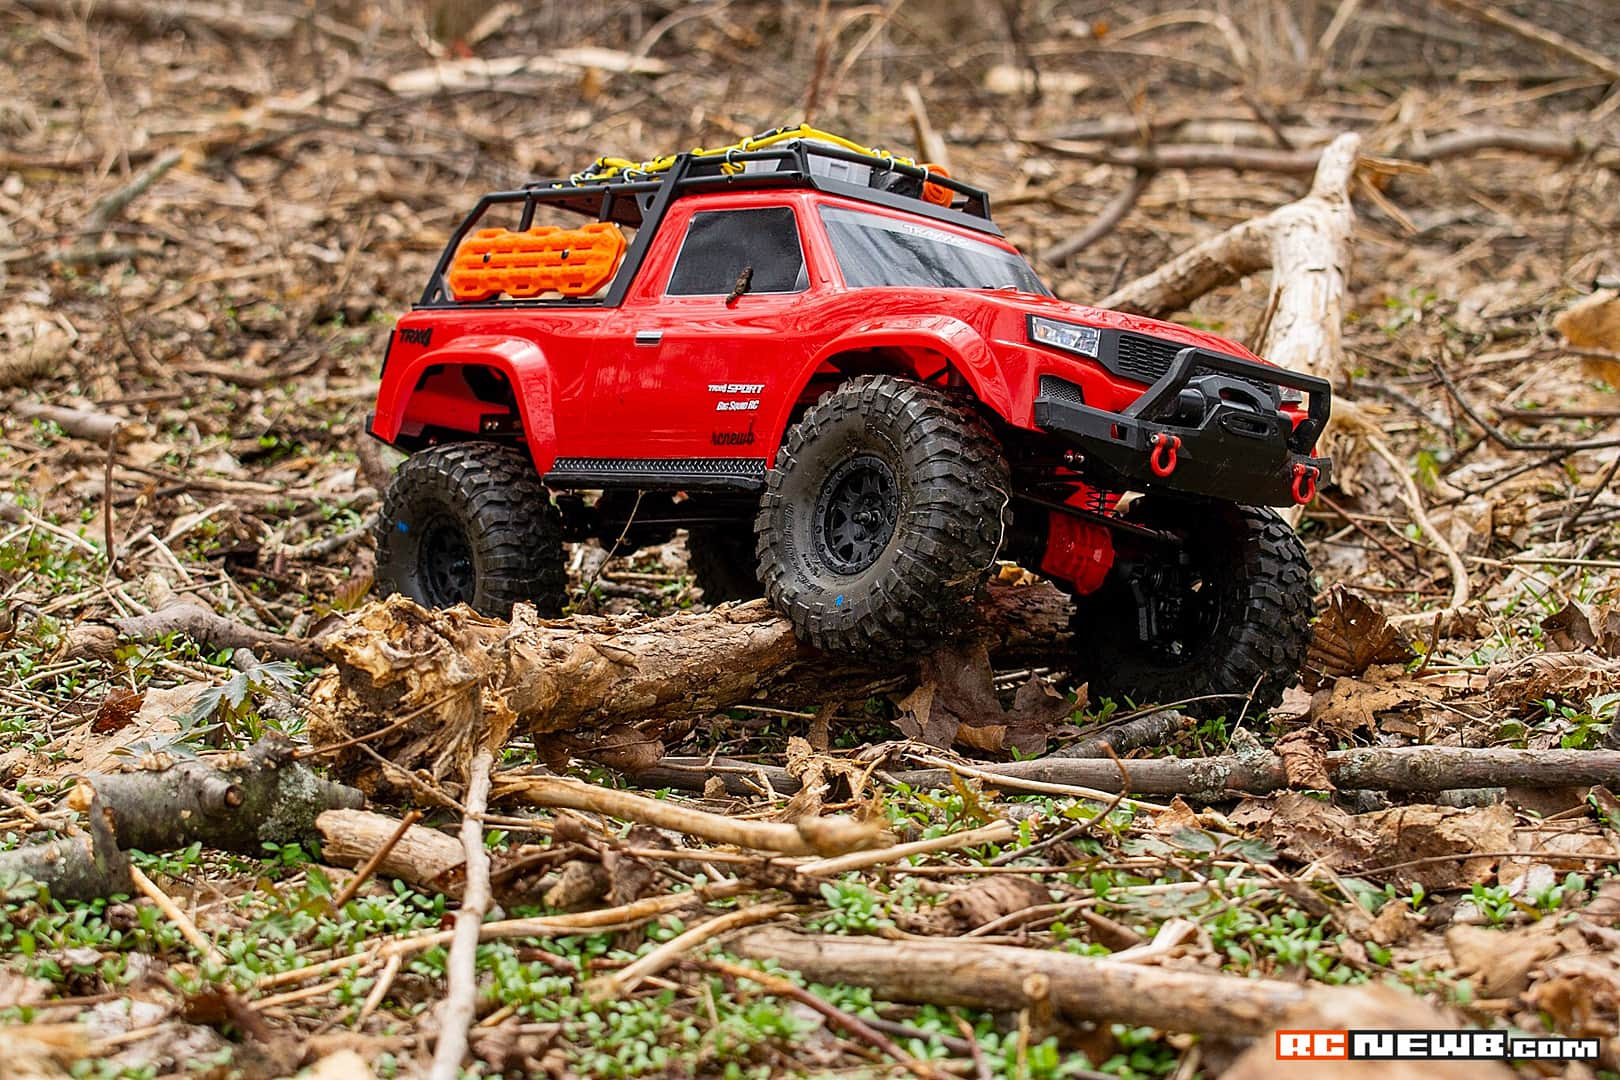 TRX-4 Transformation: Turning a Stock Trail Truck into an Outdoor Explorer [Gallery]